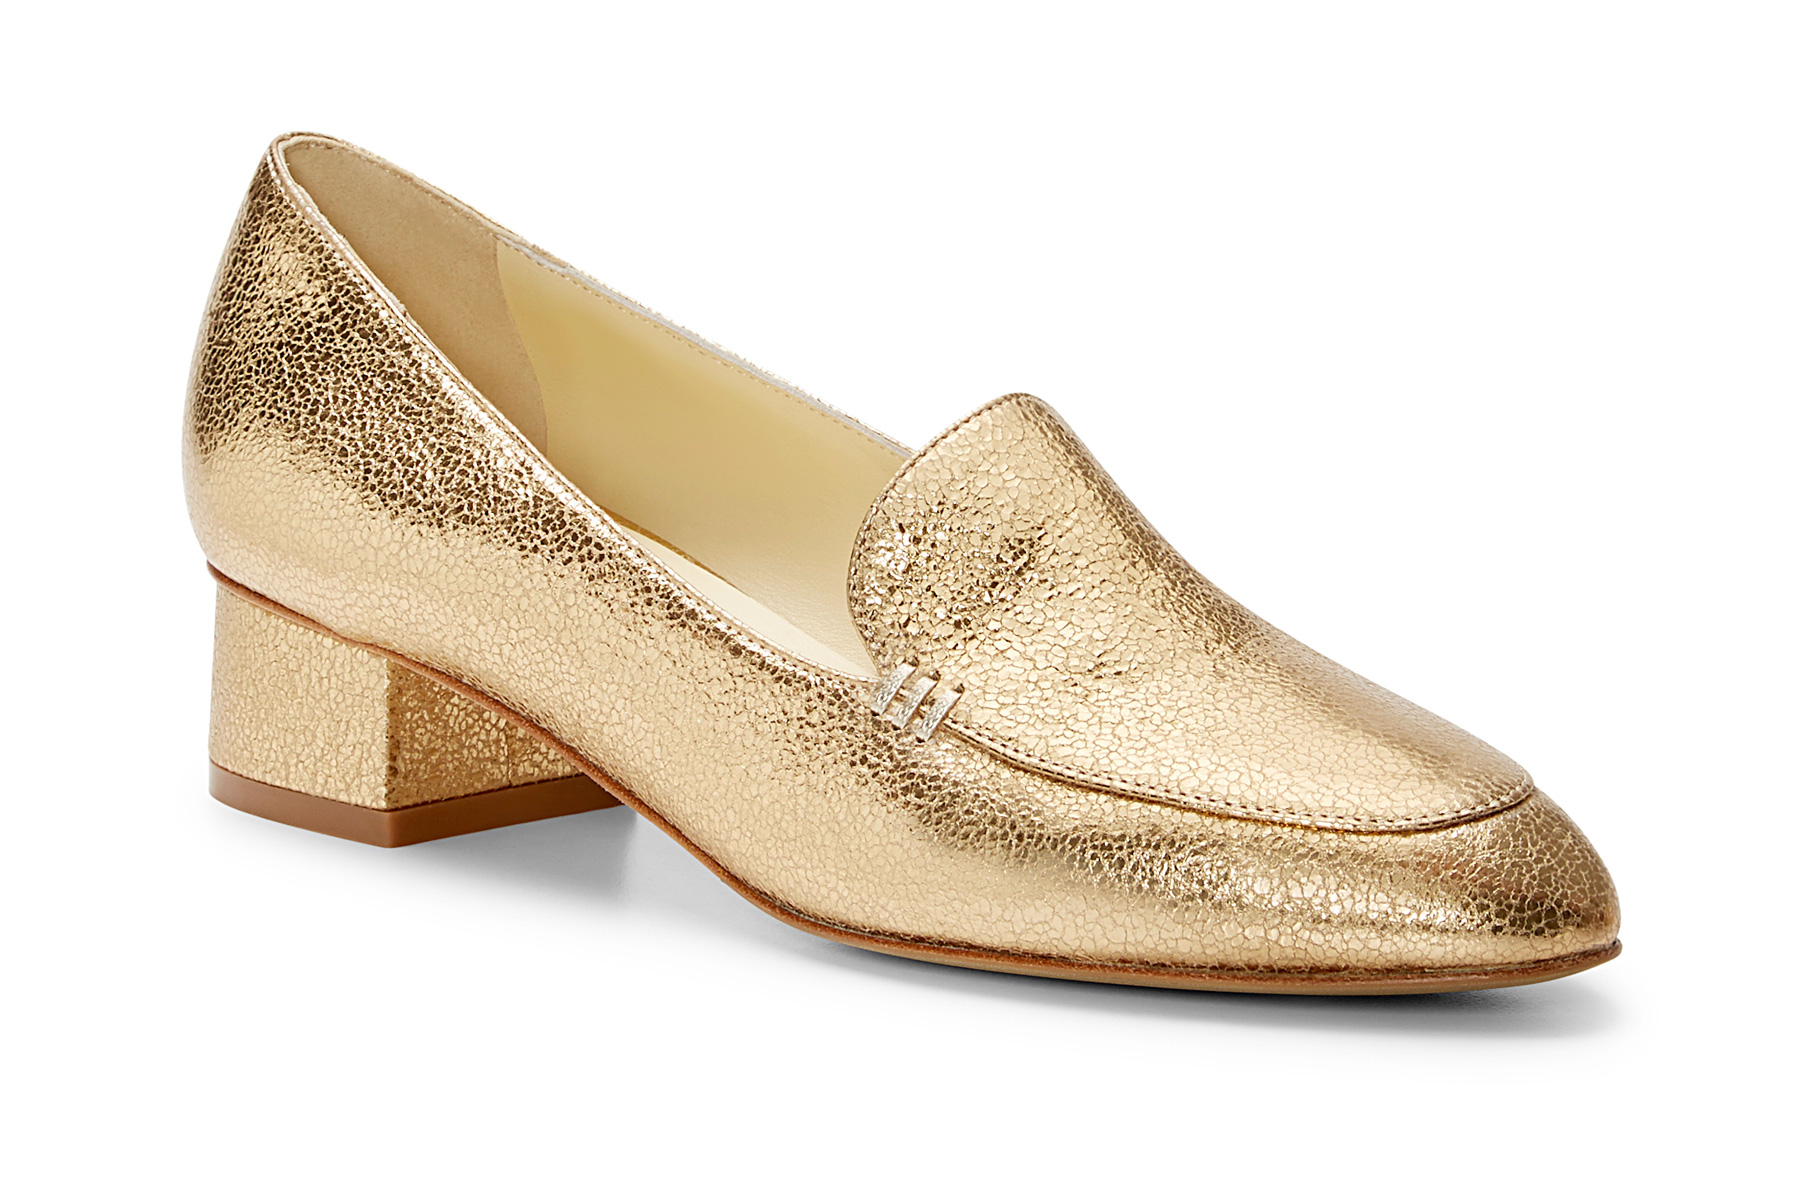 Gold loafer shoe